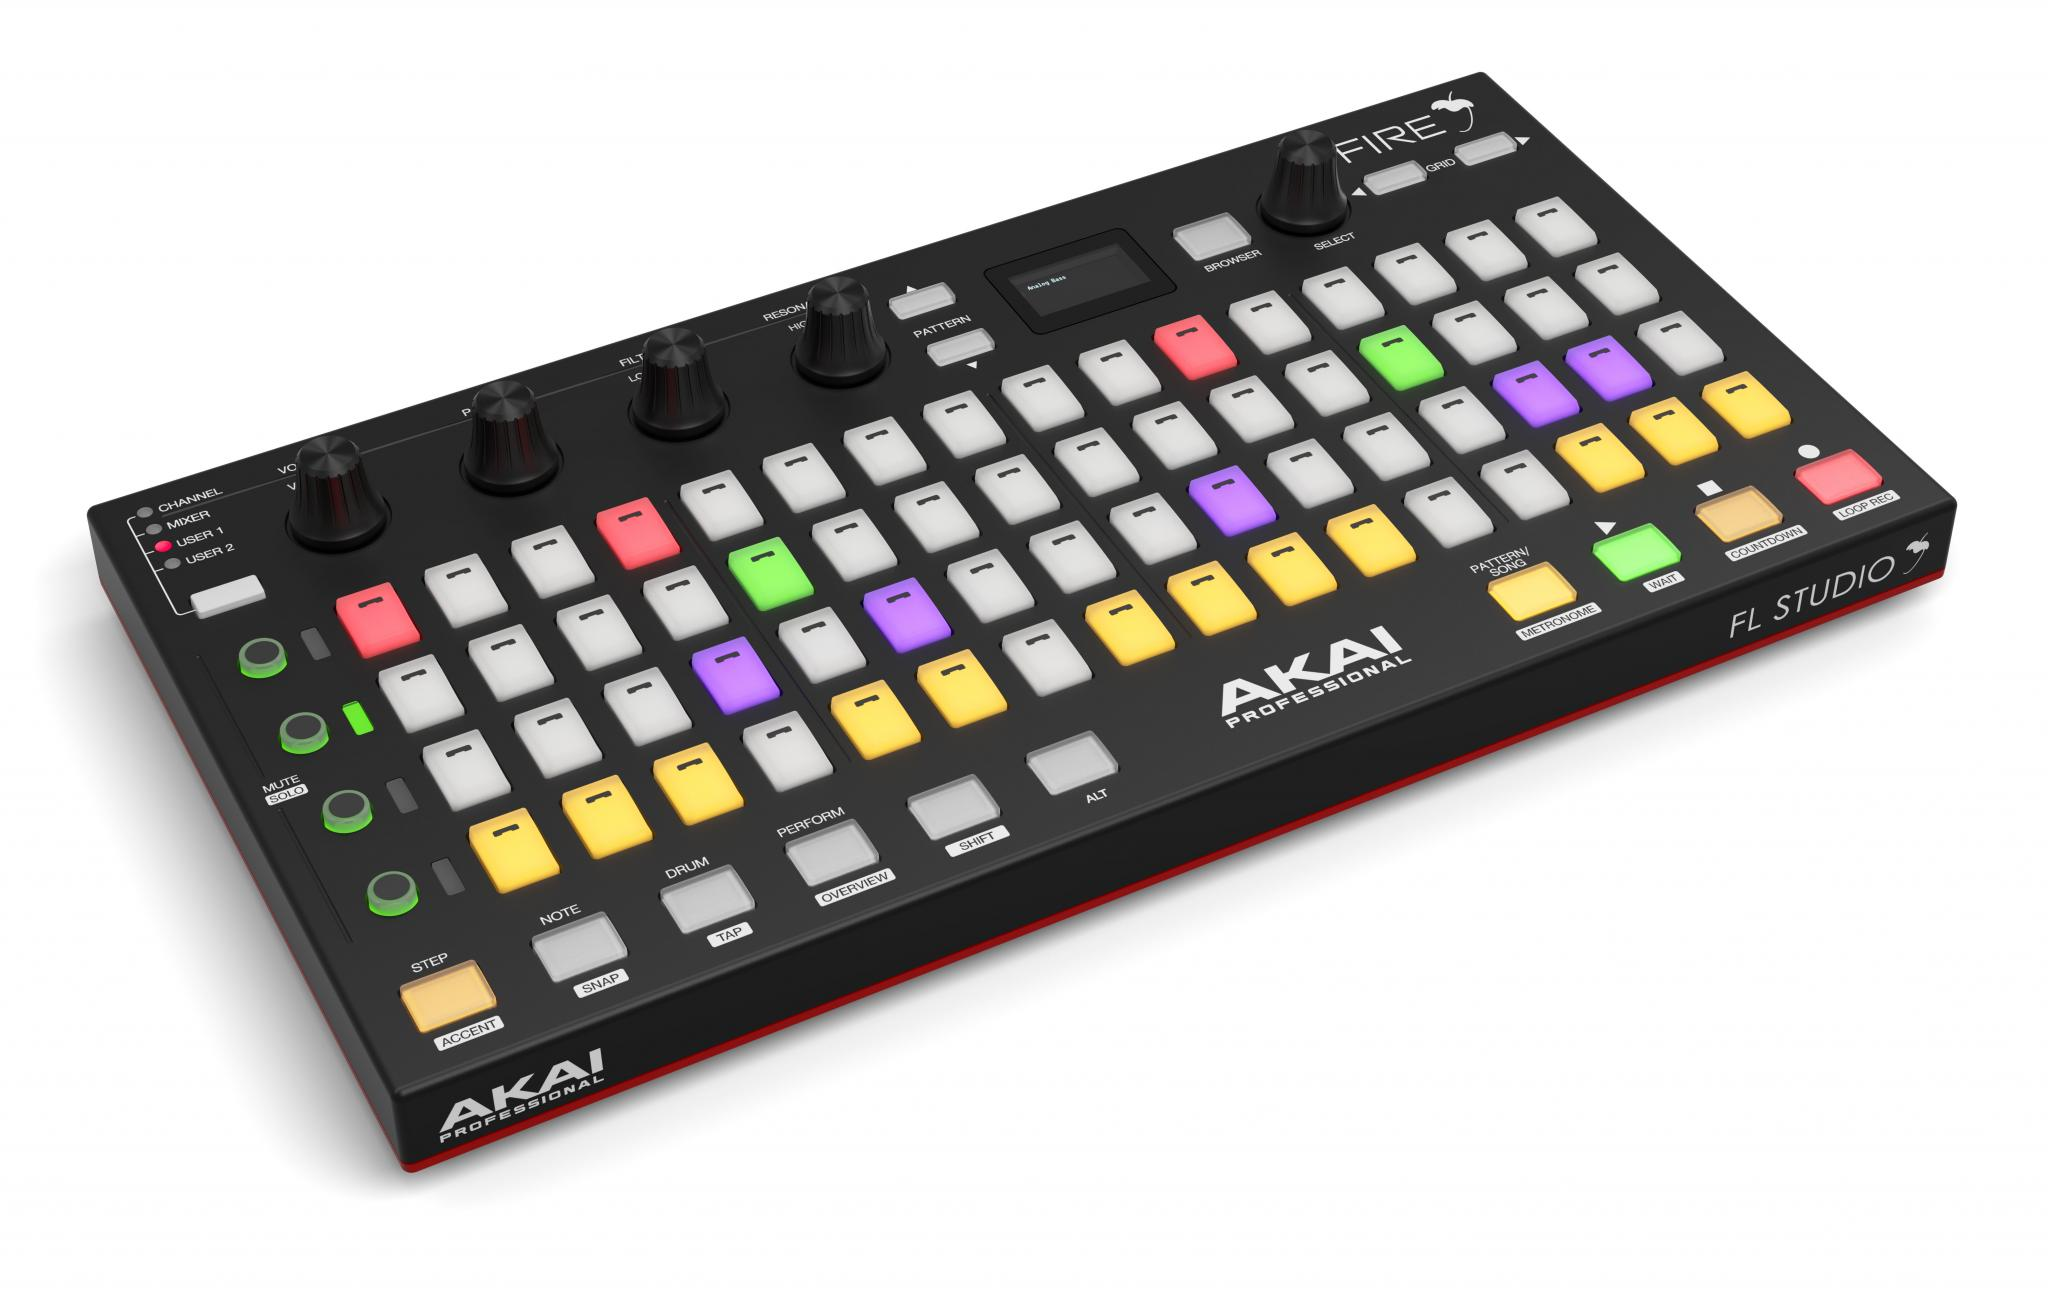 The FL Studio fuelled and splendidly named Akai Fire | DJWORX